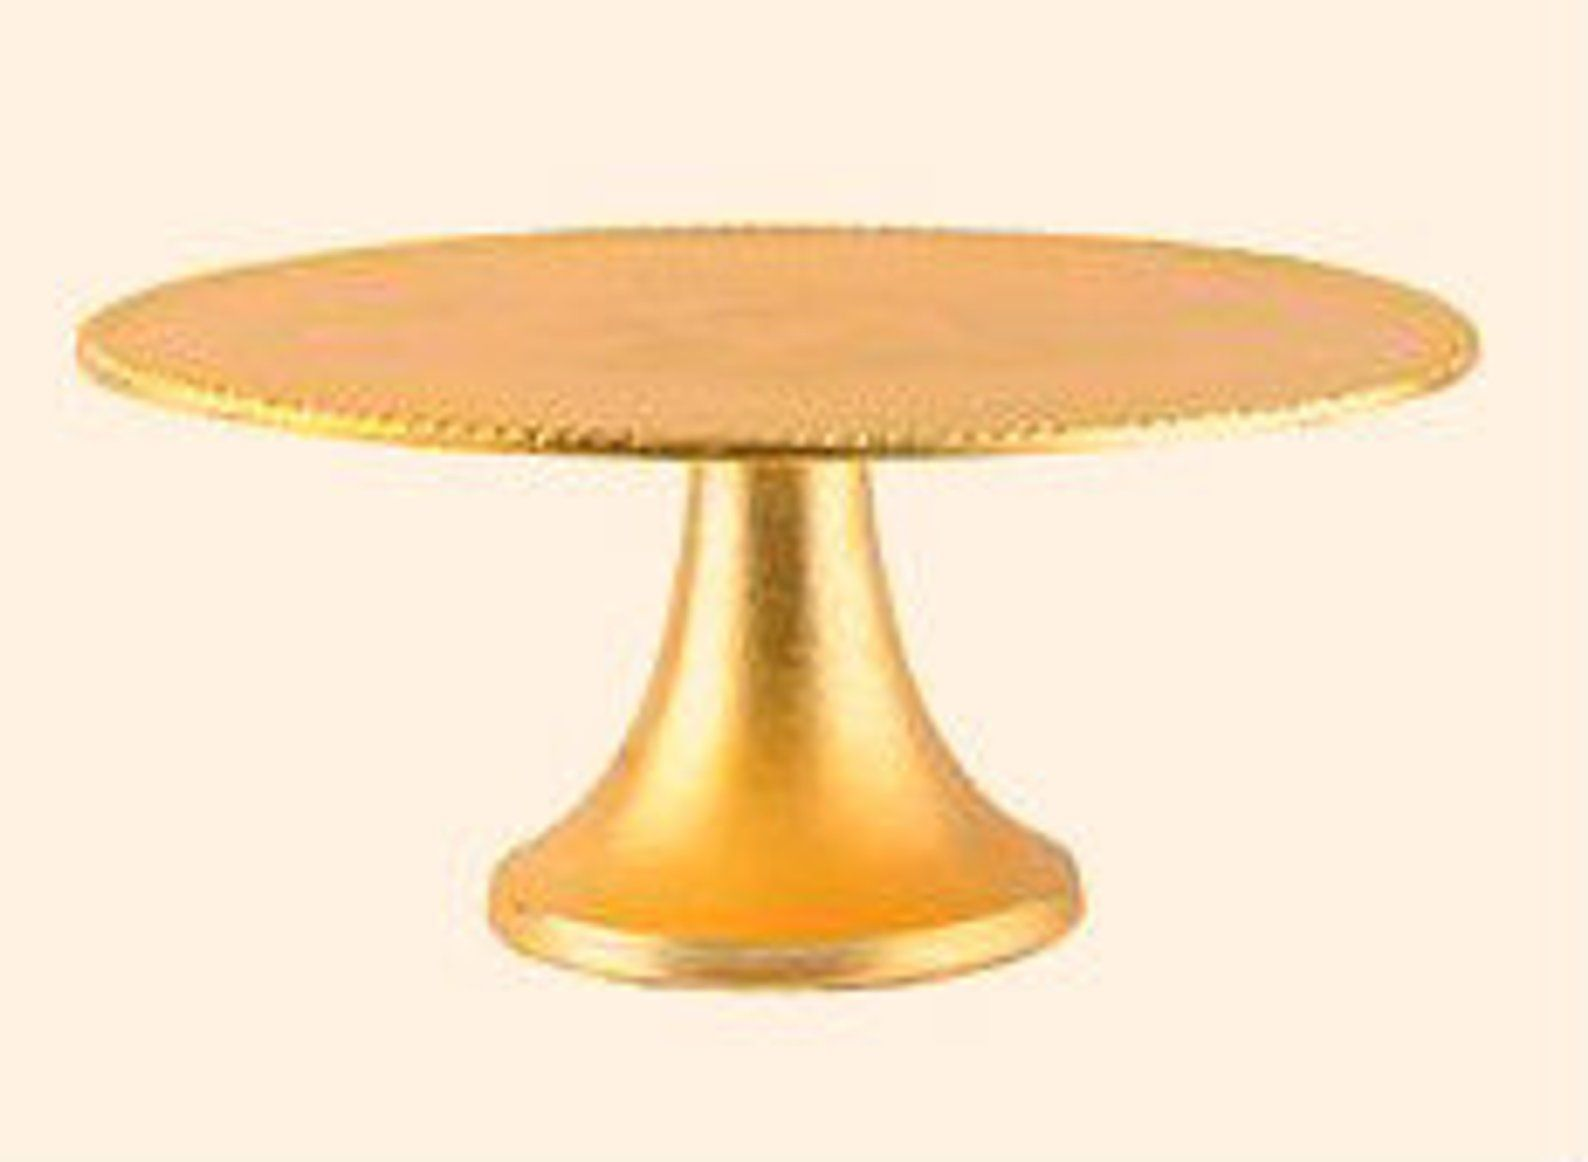 12 Inches14inches16inches18incheswooden Cake Stand Round Etsy Gold Cake Stand Wedding Cake Stand Gold Wooden Cake Stands